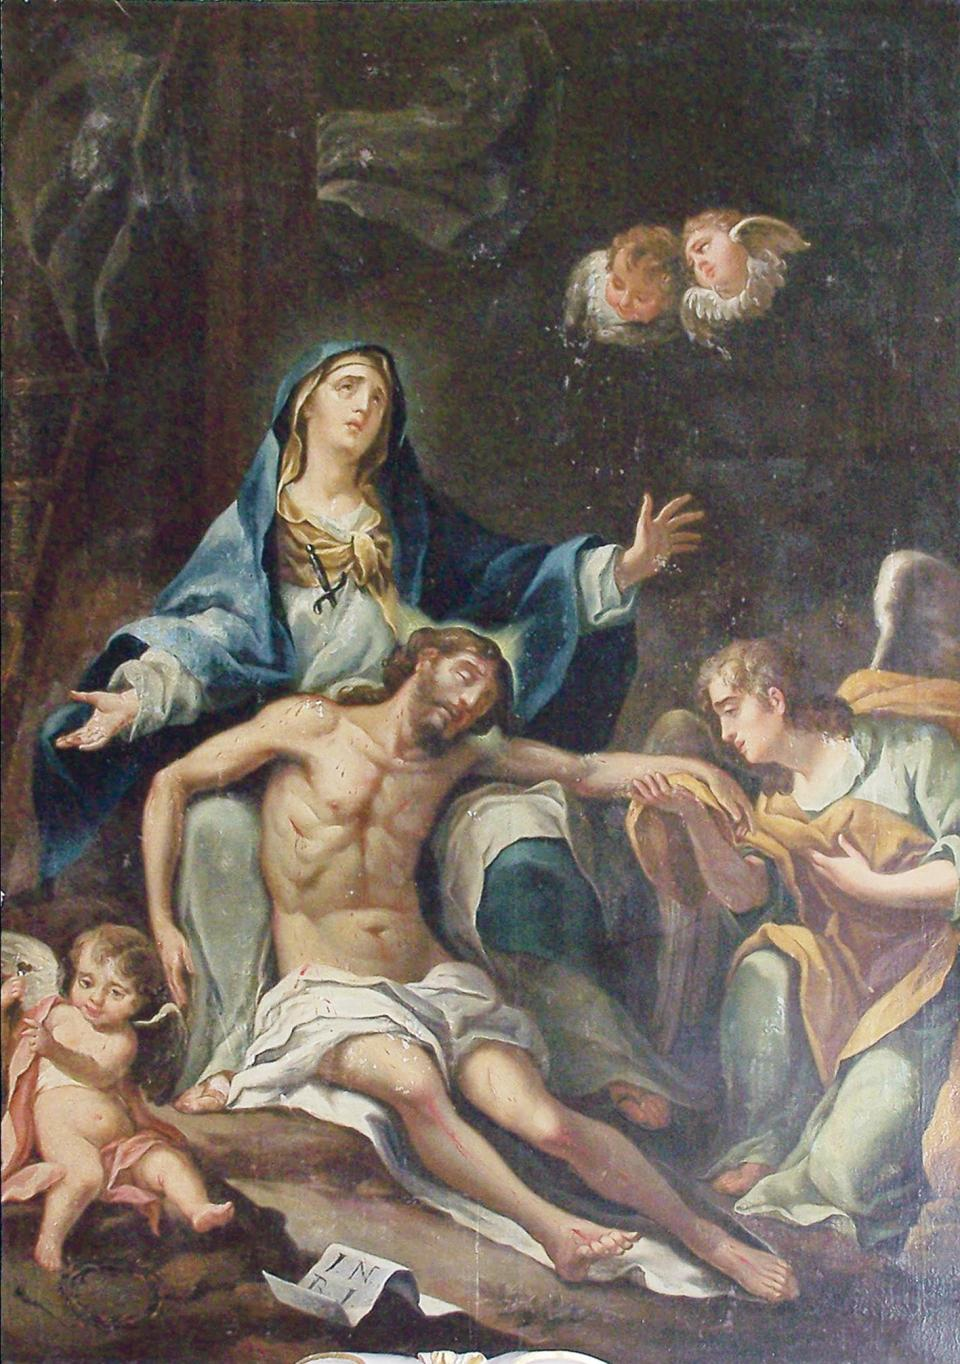 Francesco Zahra's Our Lady of Sorrows, oil on canvas (1740-1750)